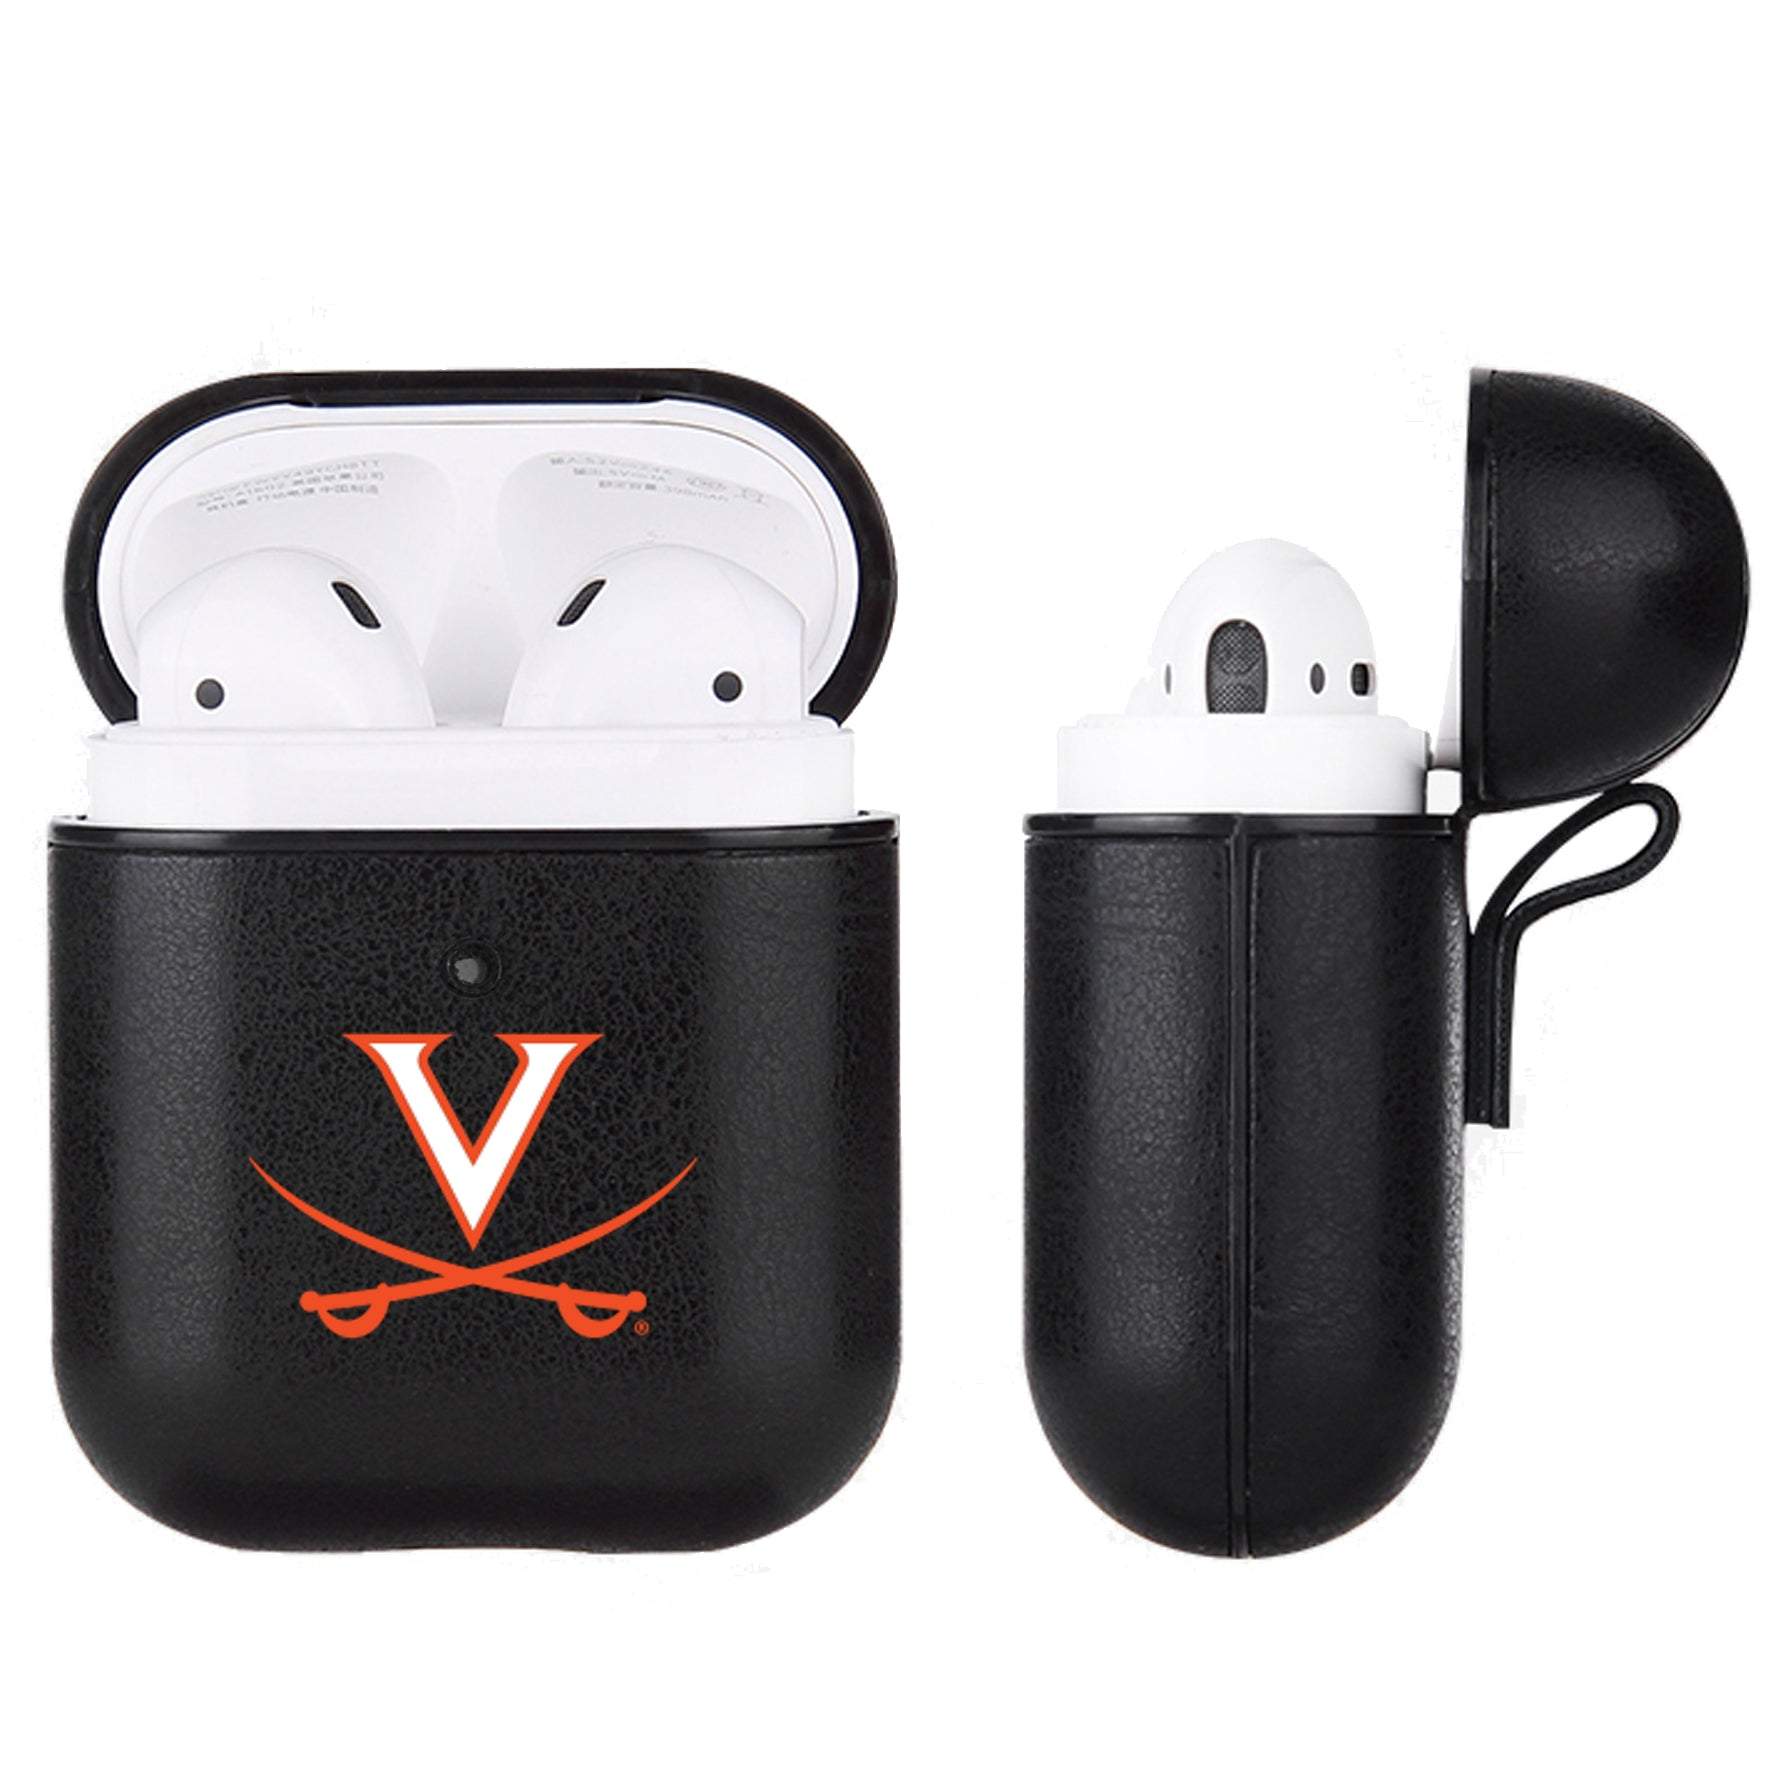 Virginia Cavaliers Primary Mark design Black Apple Air Pod Leather Case